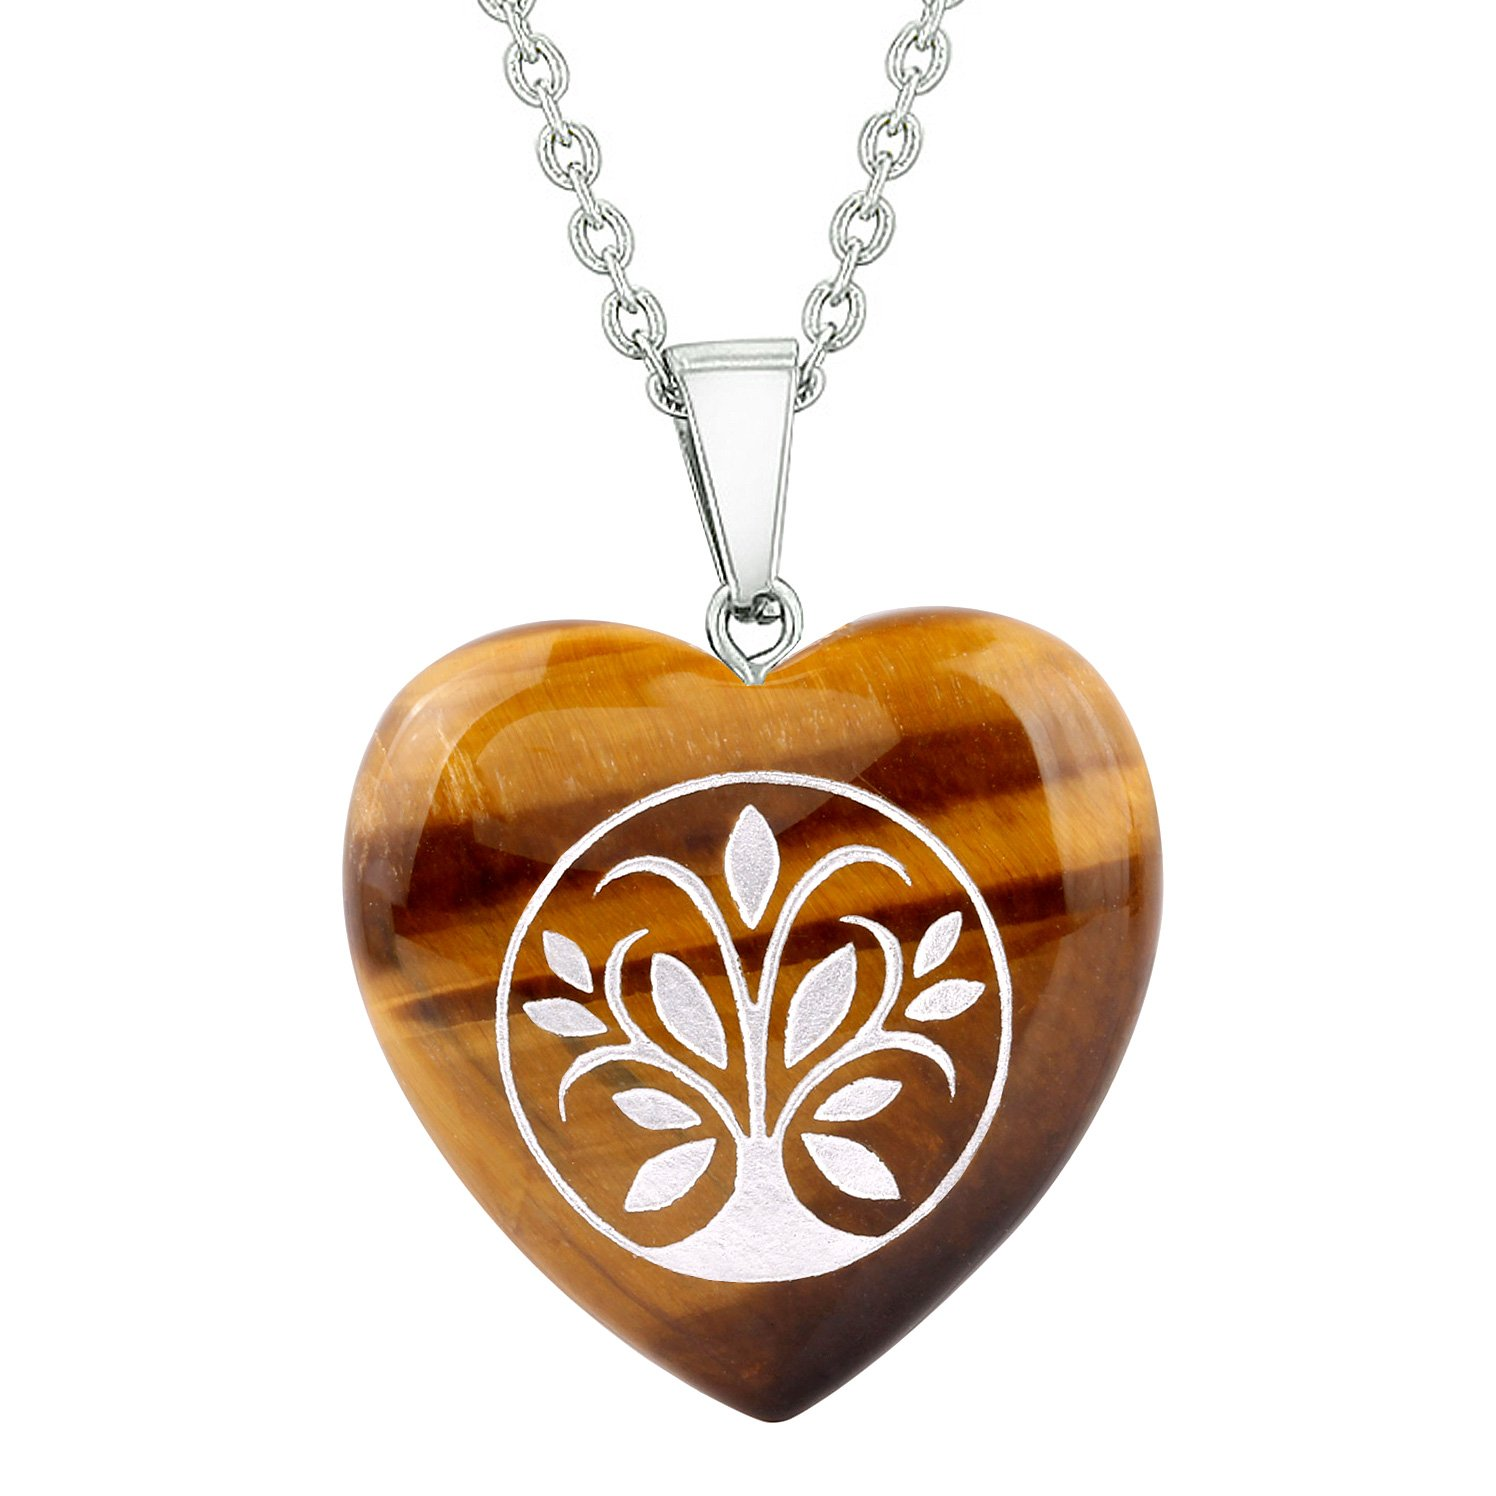 Healing Powers Tiger Eye Gemstone Protection Talisman Heart Shaped Jewelry and Gifts